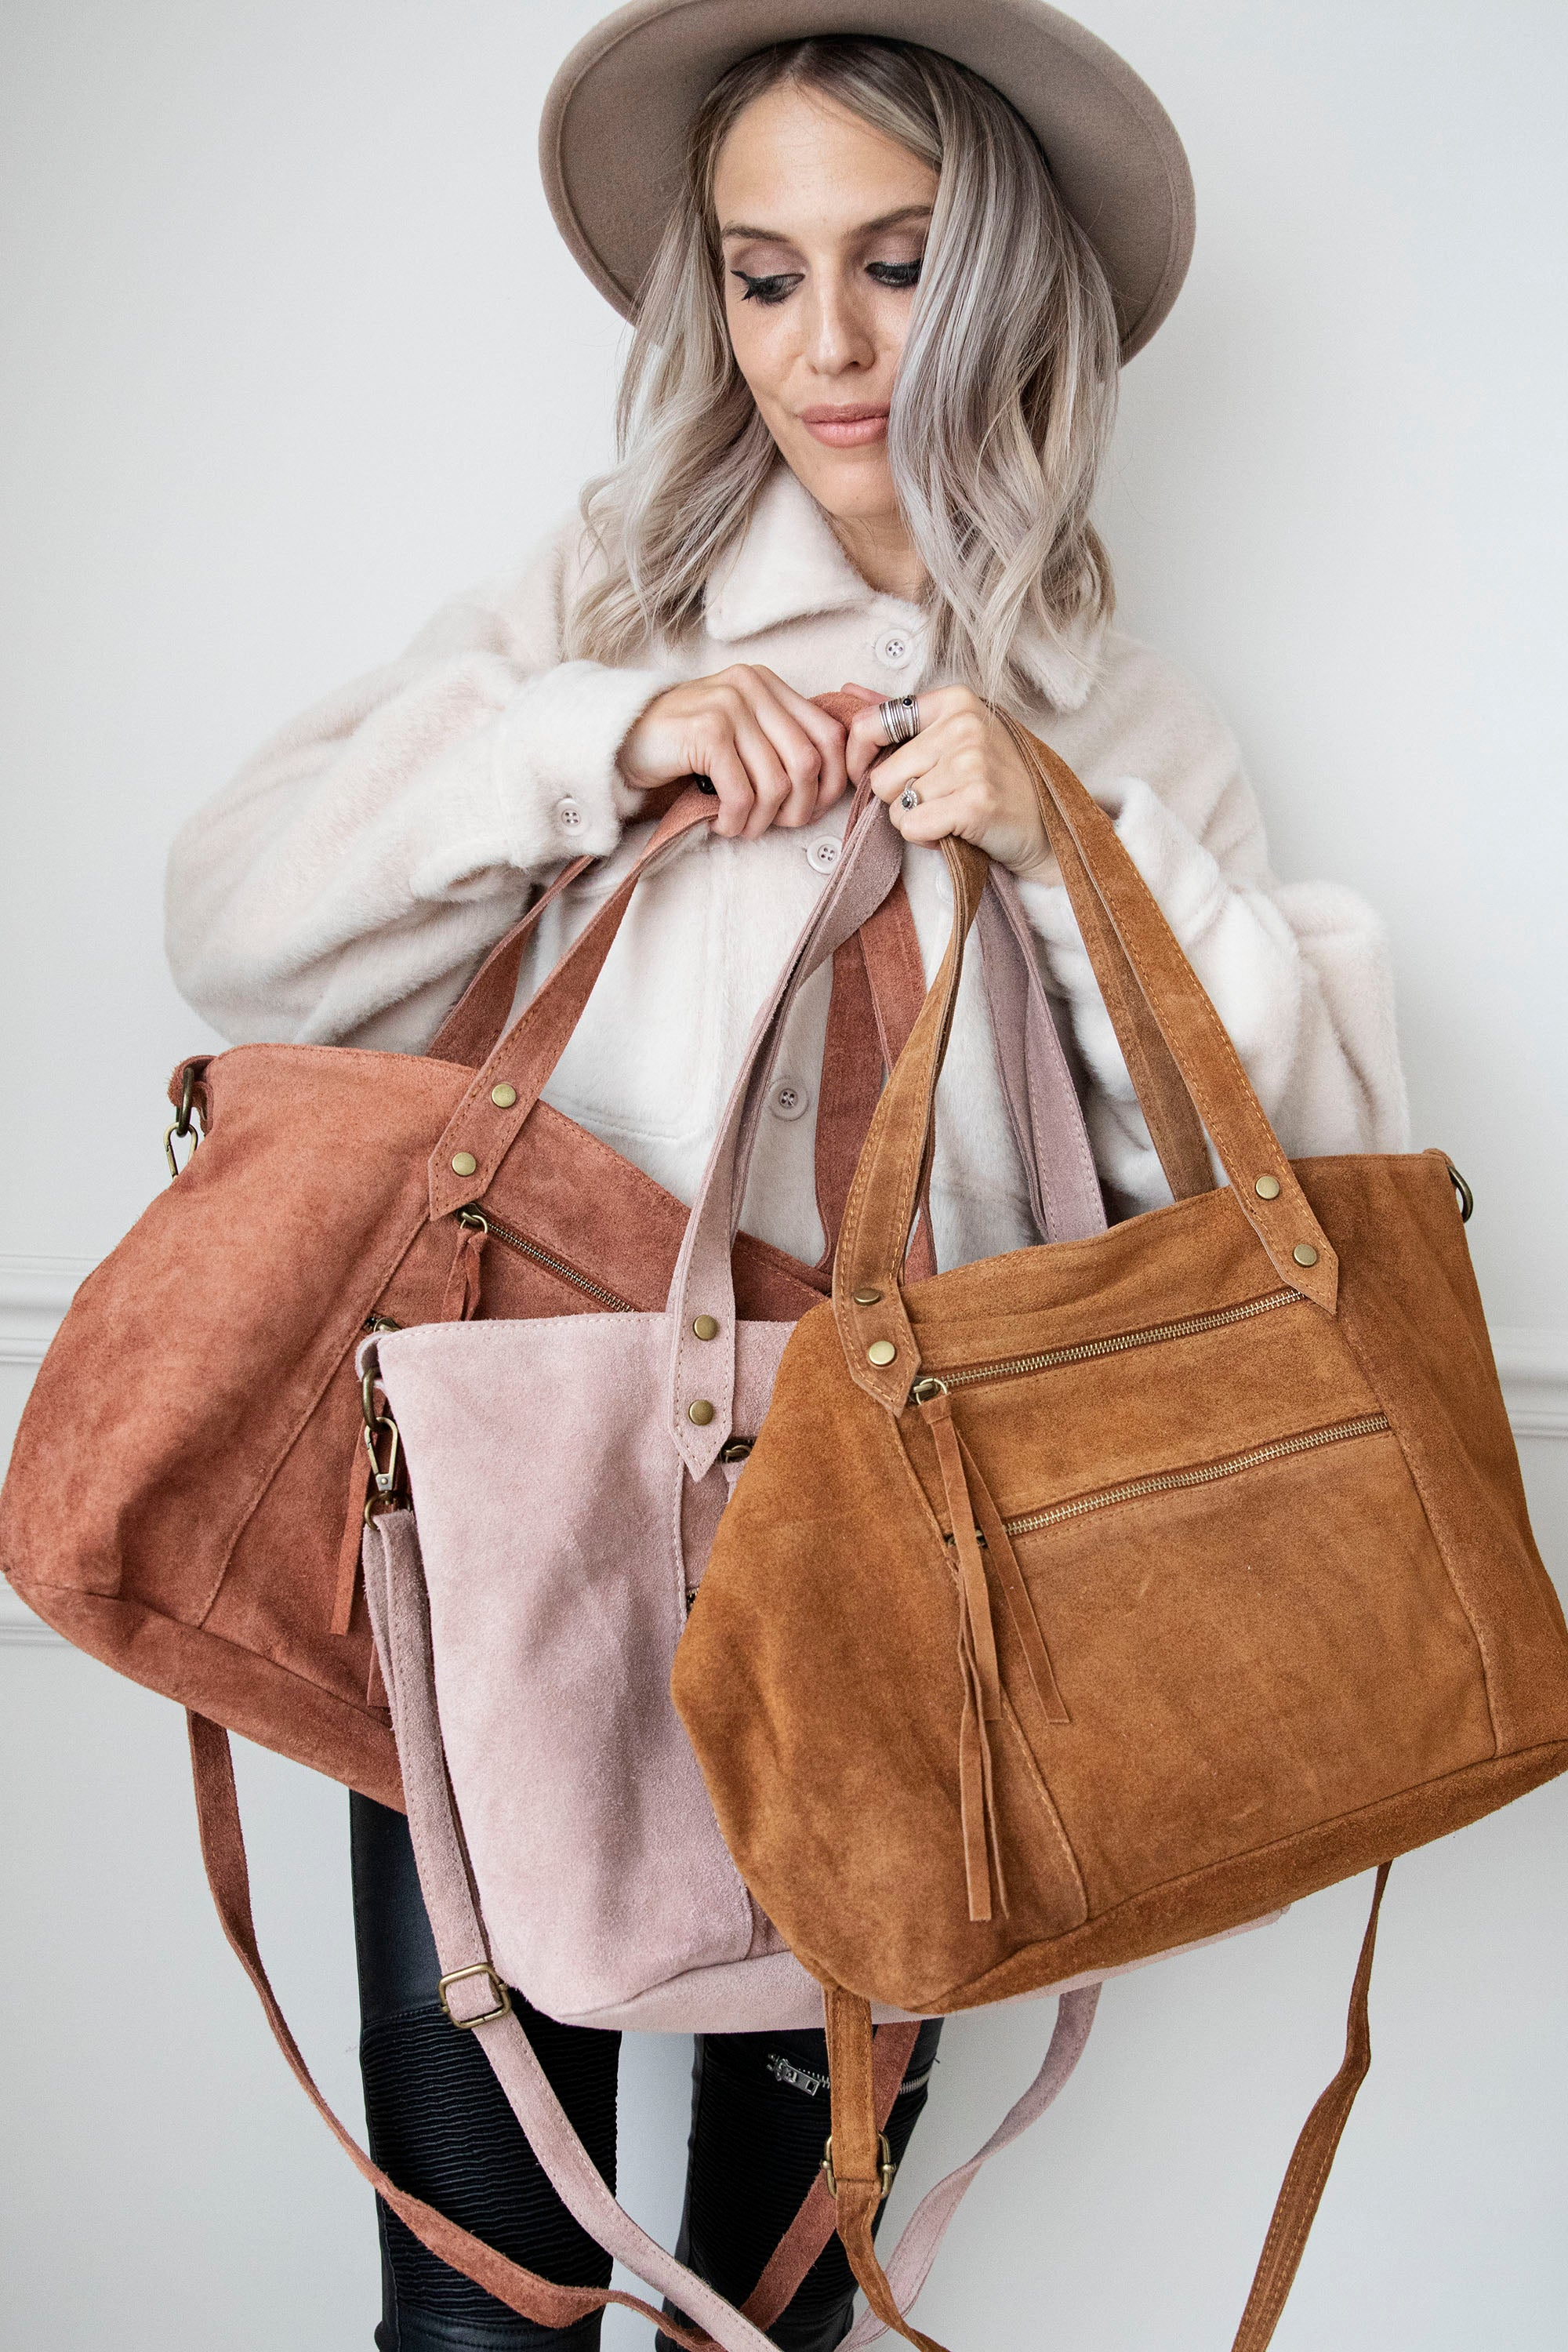 It's Real Love Dusty Rose/Leather - Handtas